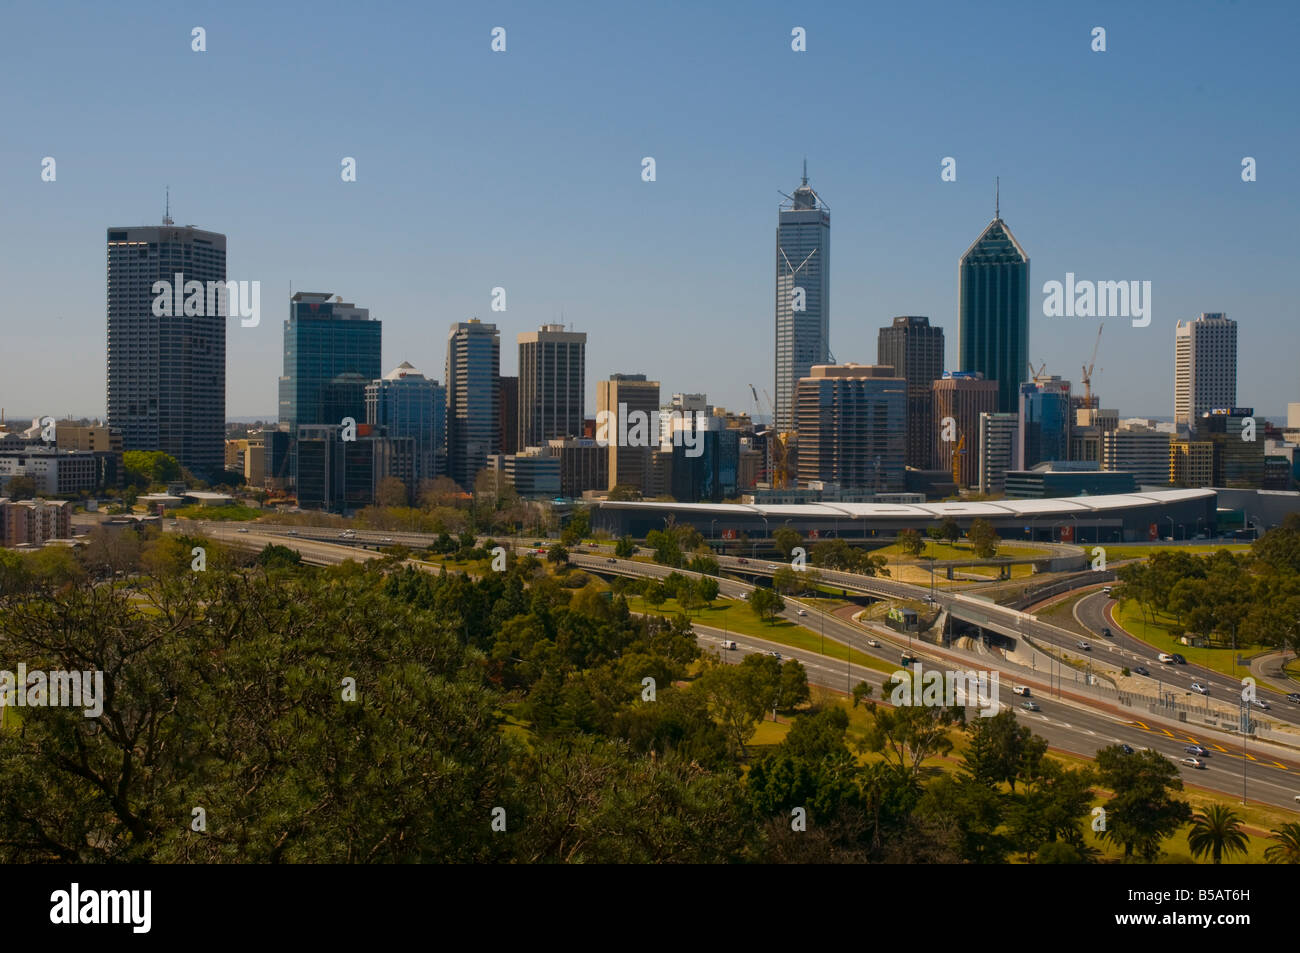 View of the Perth CBD skyline from Kings Park - Stock Image